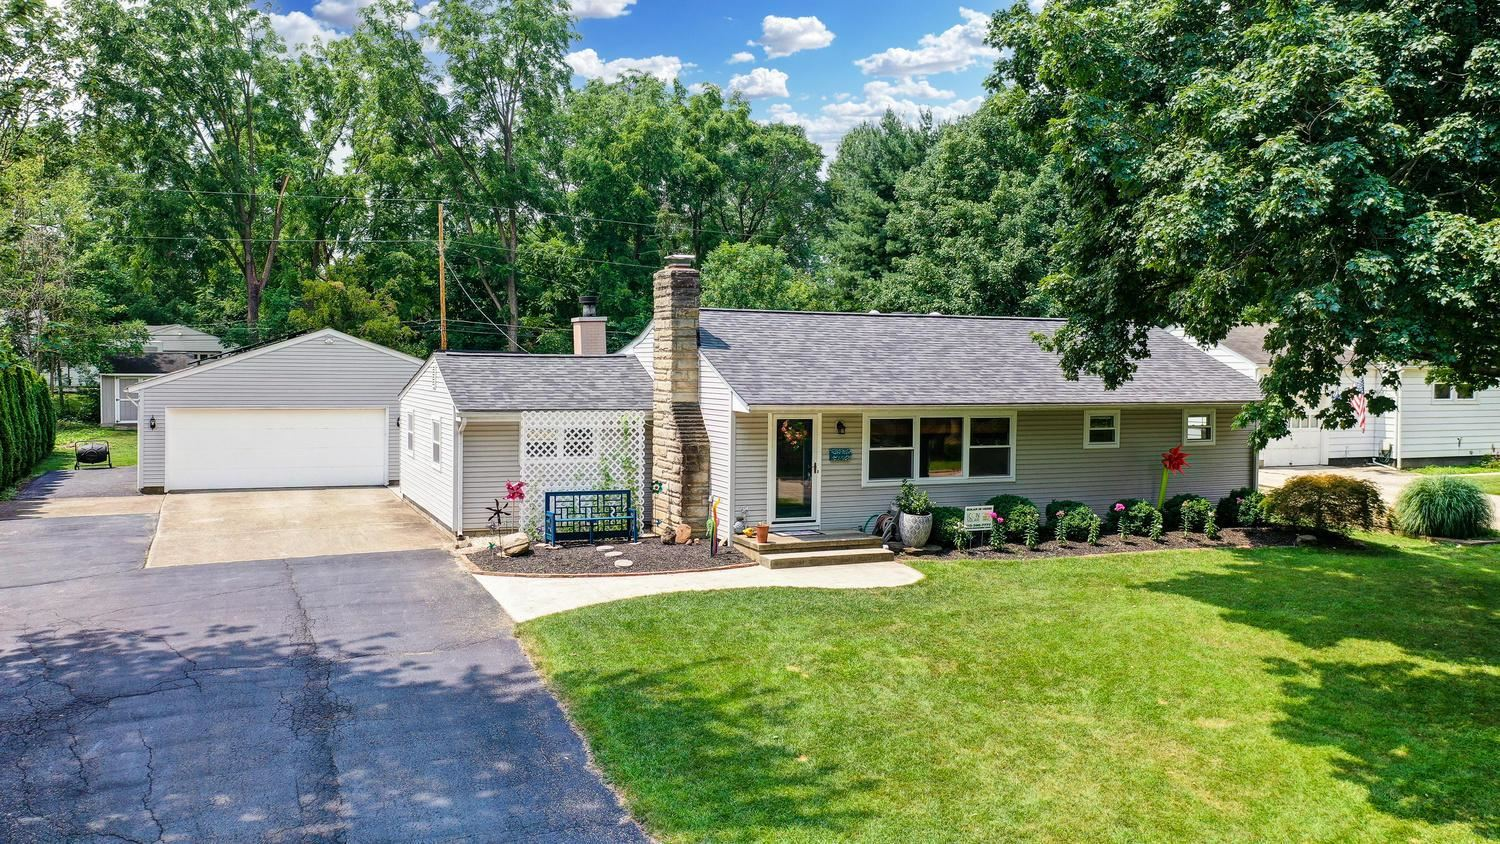 Photo of 379 E Park Street, Westerville, OH 43081 (MLS # 221029132)